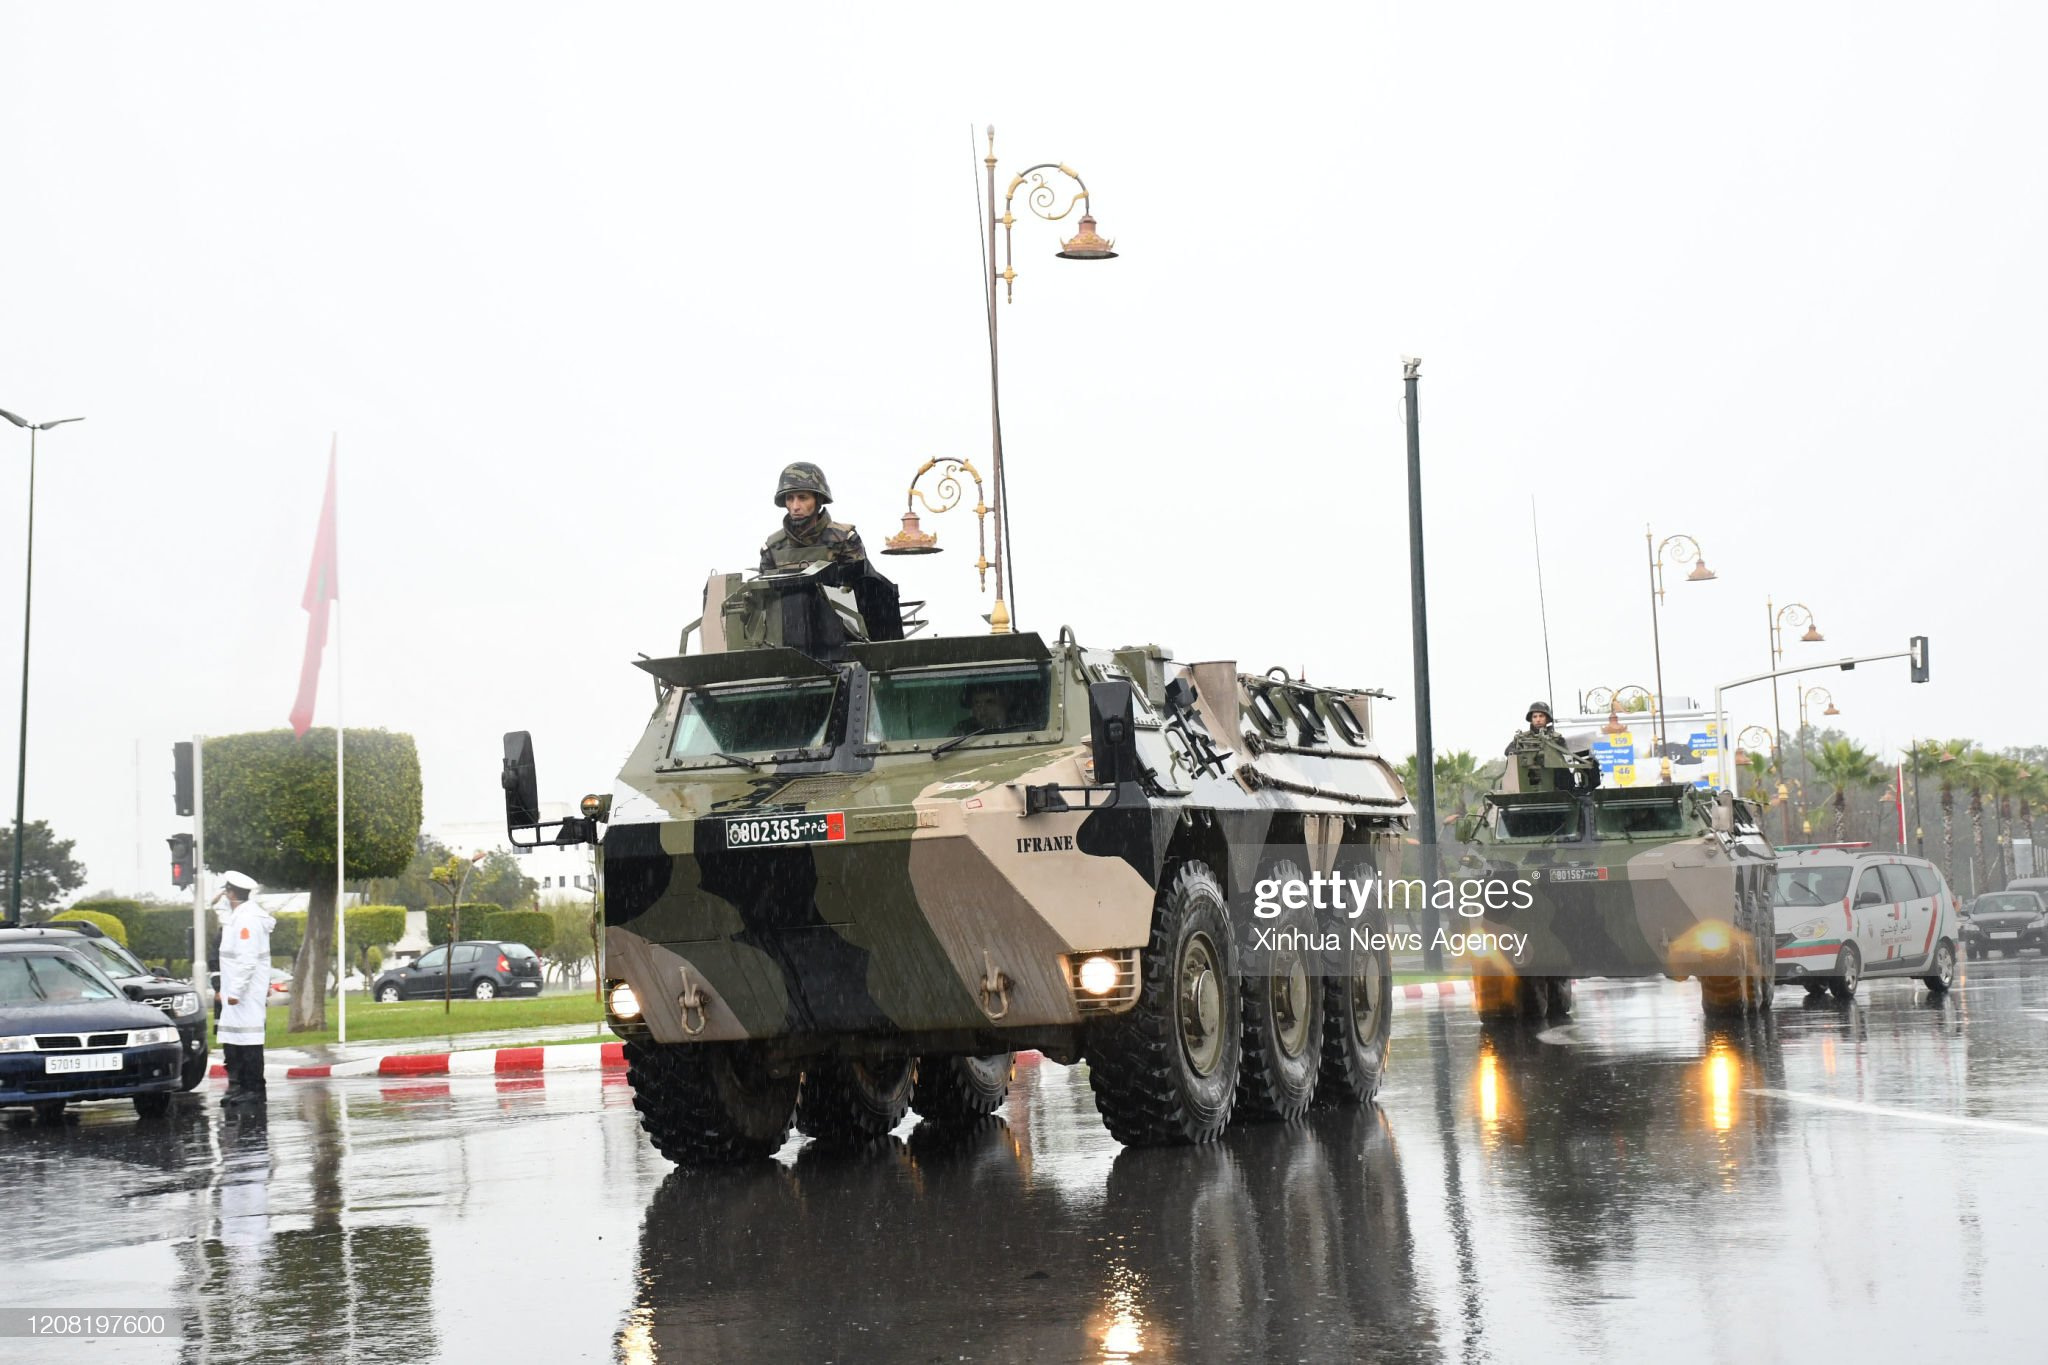 Renault VAB VTT et VCI des Forces Armées Royales - Page 3 March-24-2020-military-vehicles-are-seen-in-sale-morocco-on-march-24-picture-id1208197600?s=2048x2048